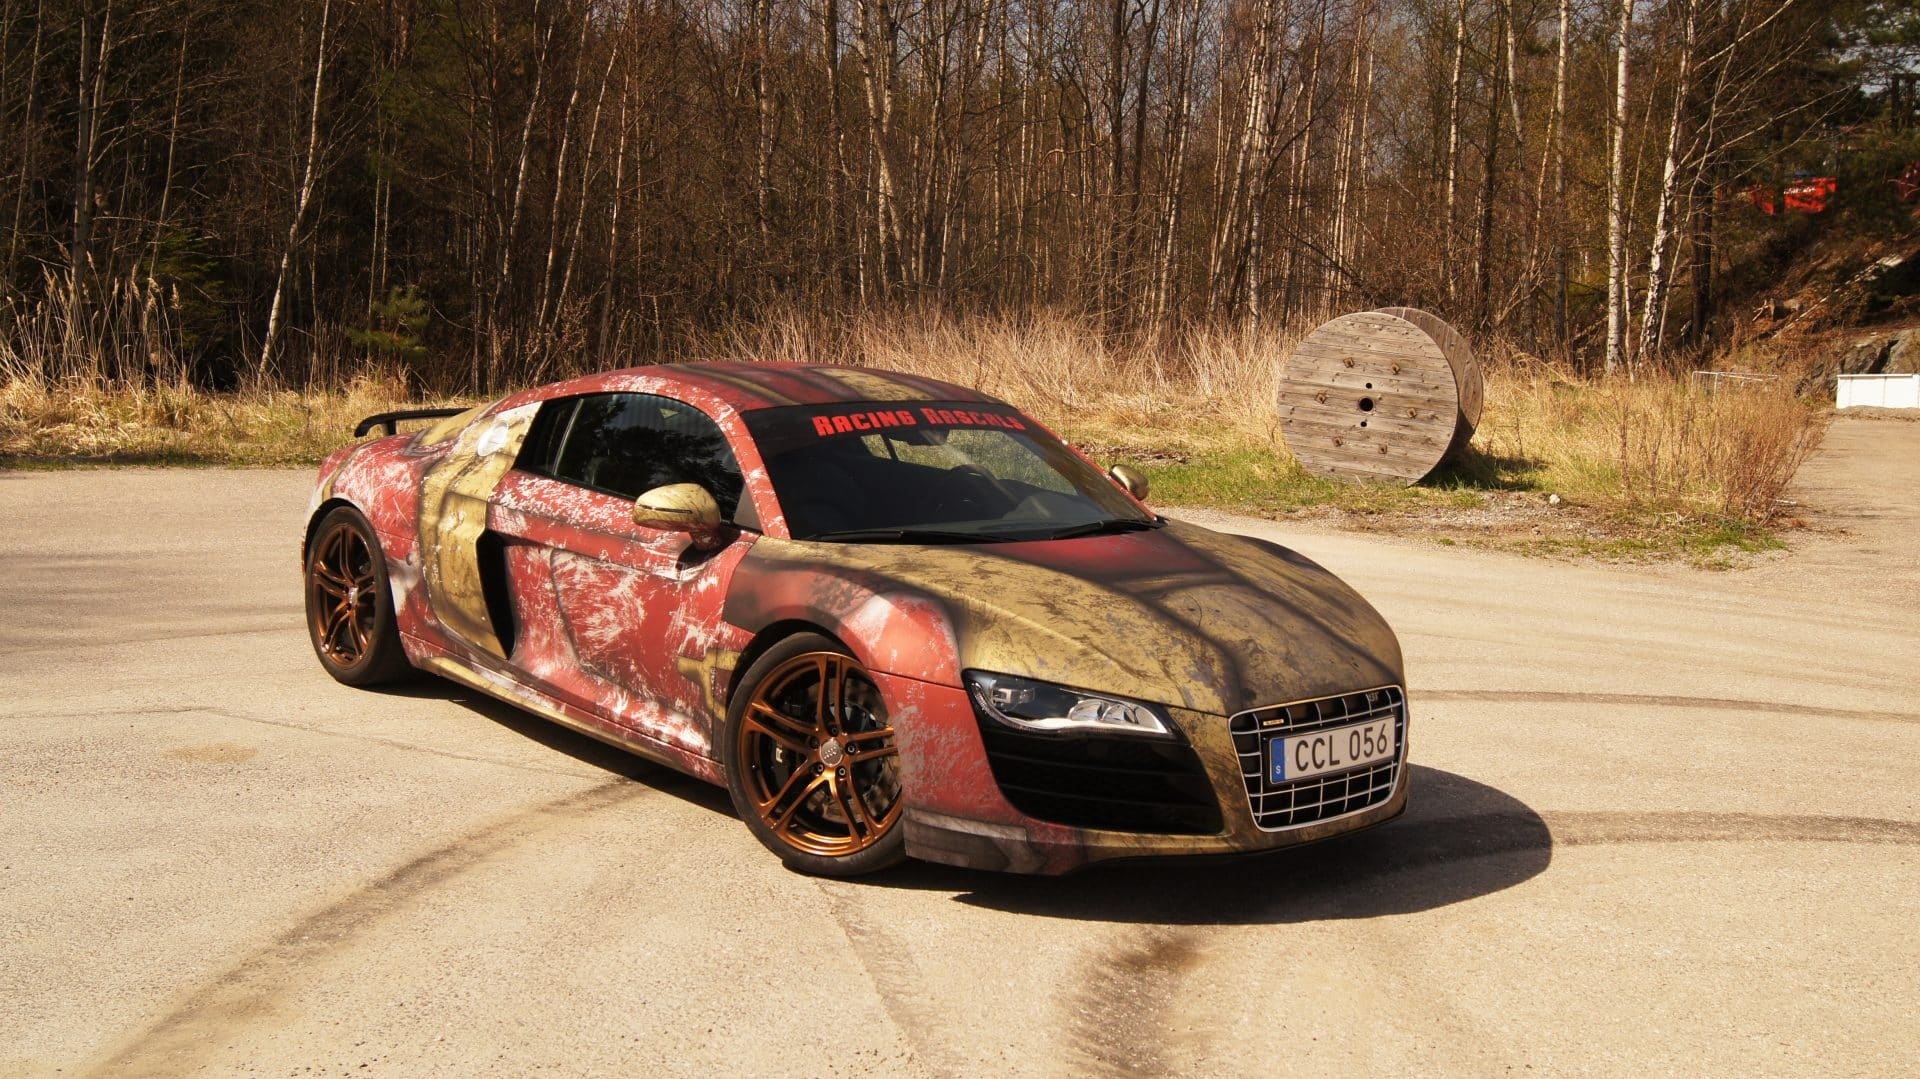 Iron Man Audi R8 Wrap Design By Skepple Inc Wrapzone Skepple Inc